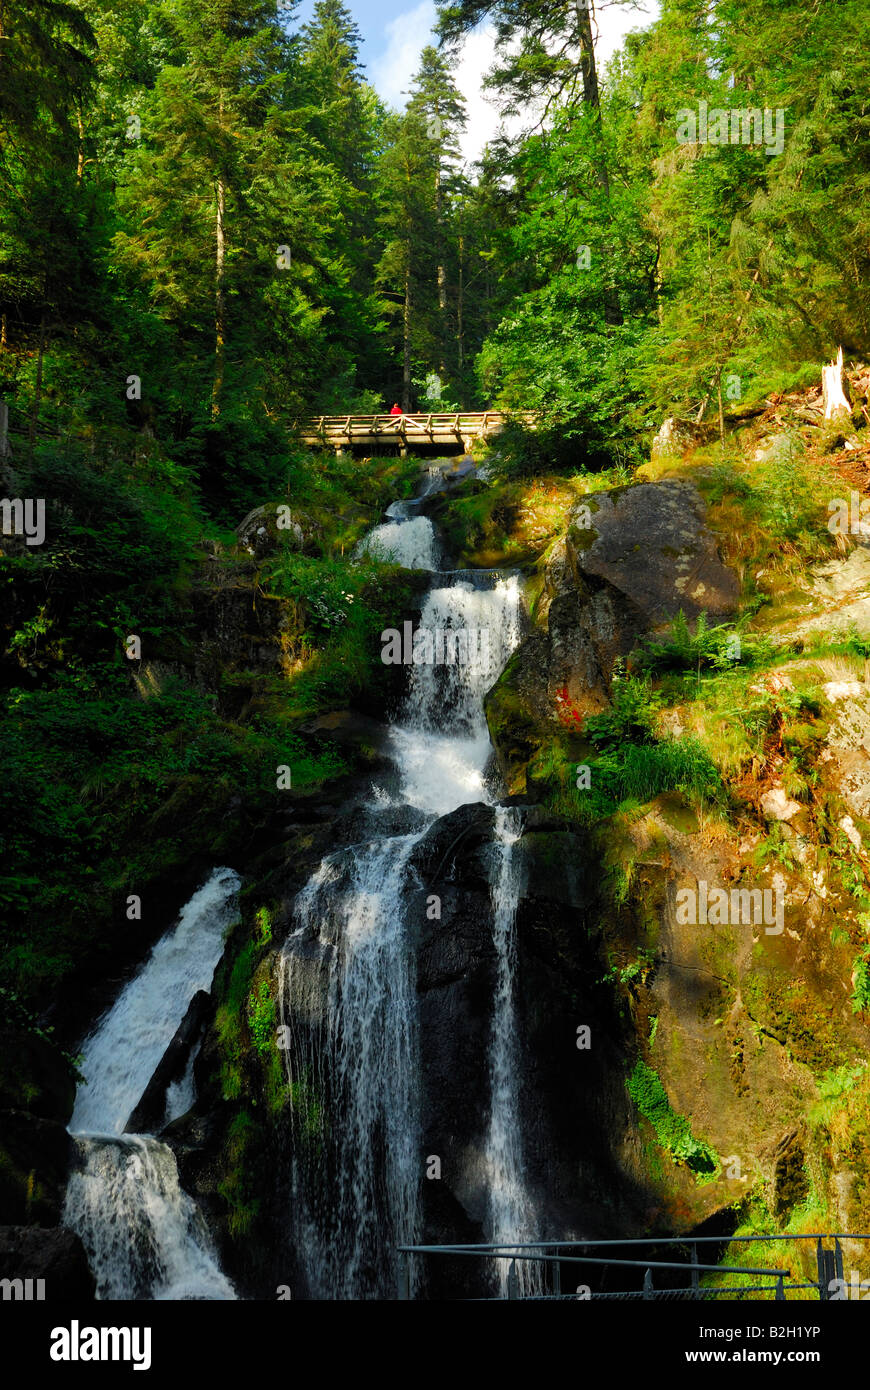 The Triberg Wasserfall waterfall where the Gutach River plunges over a series of cascades two kilometers long and - Stock Image